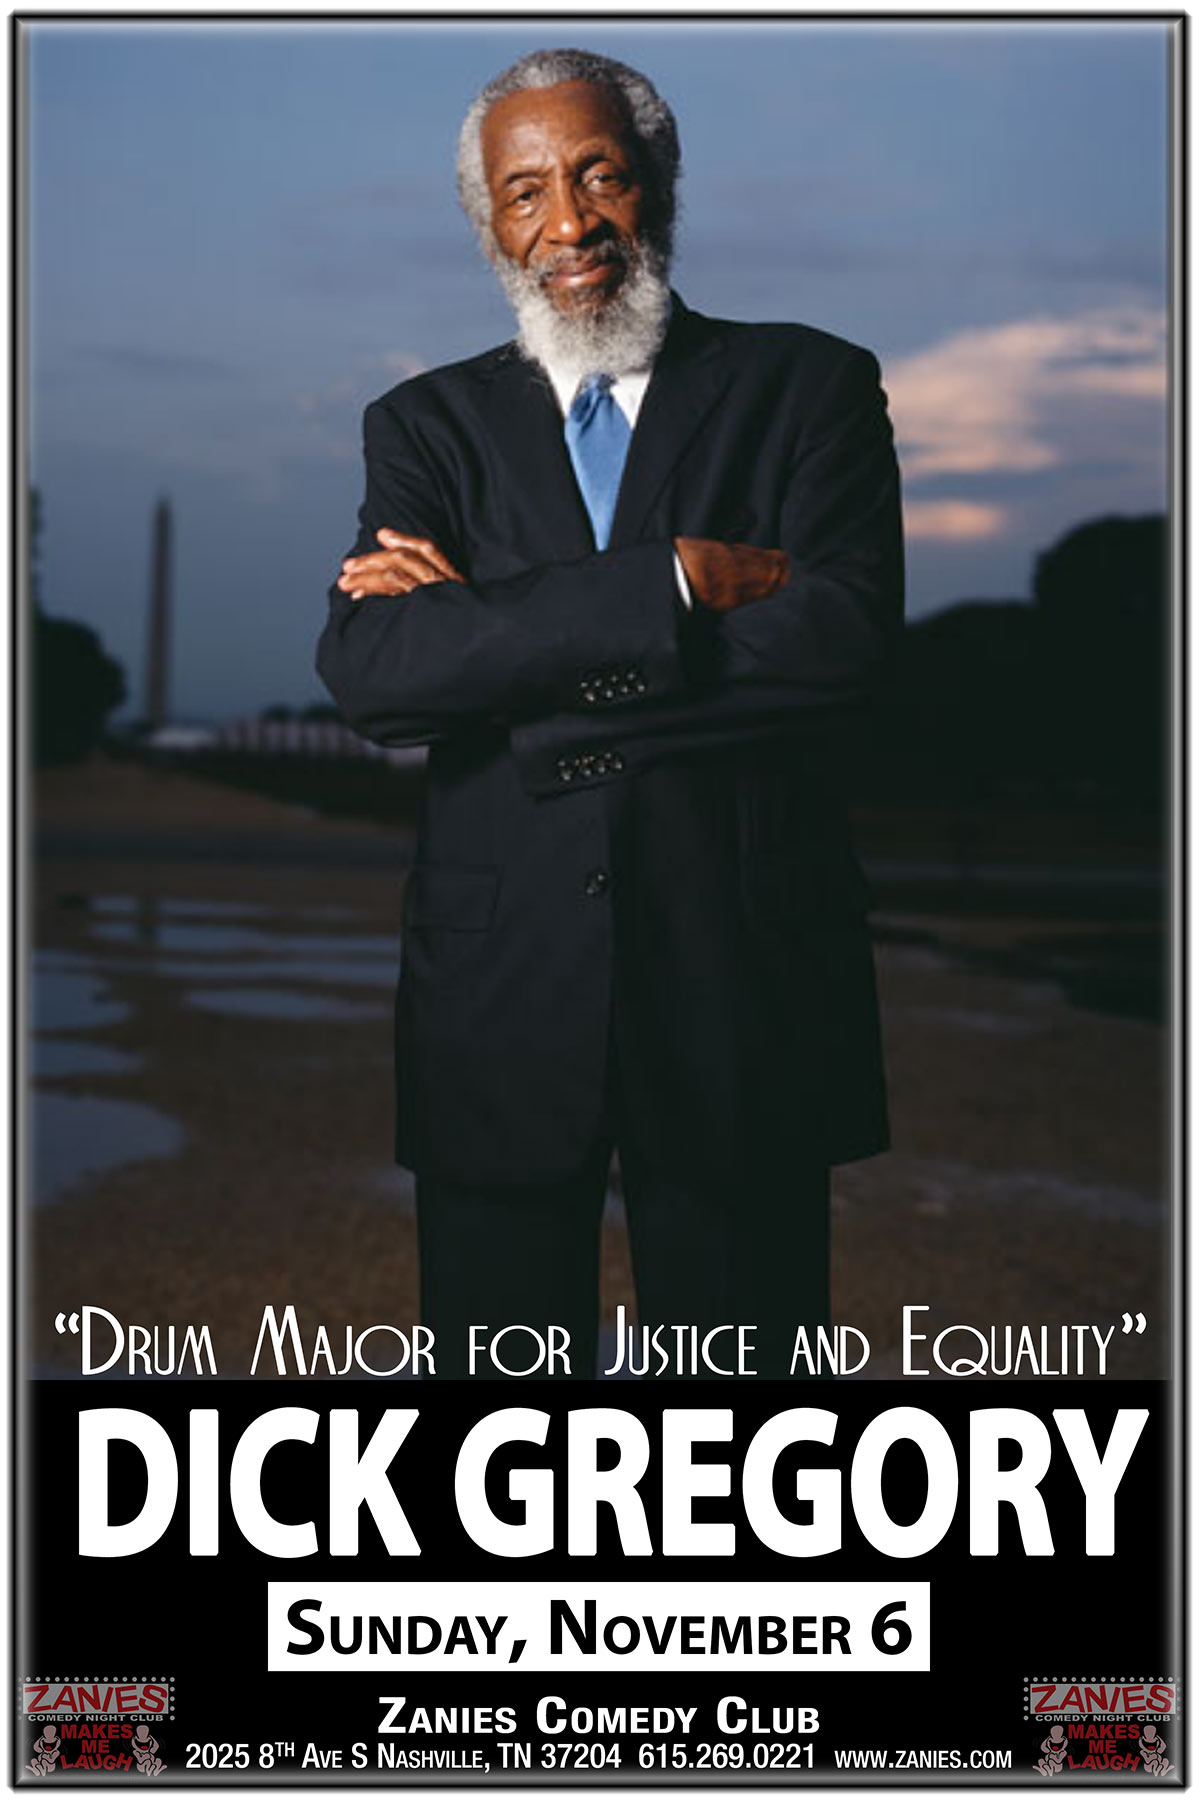 Dick Gregory One of America's best-known and best-loved political comedians takes the stage for an evening of hard-hitting and hilarious comedy. Sunday November 6, 2016